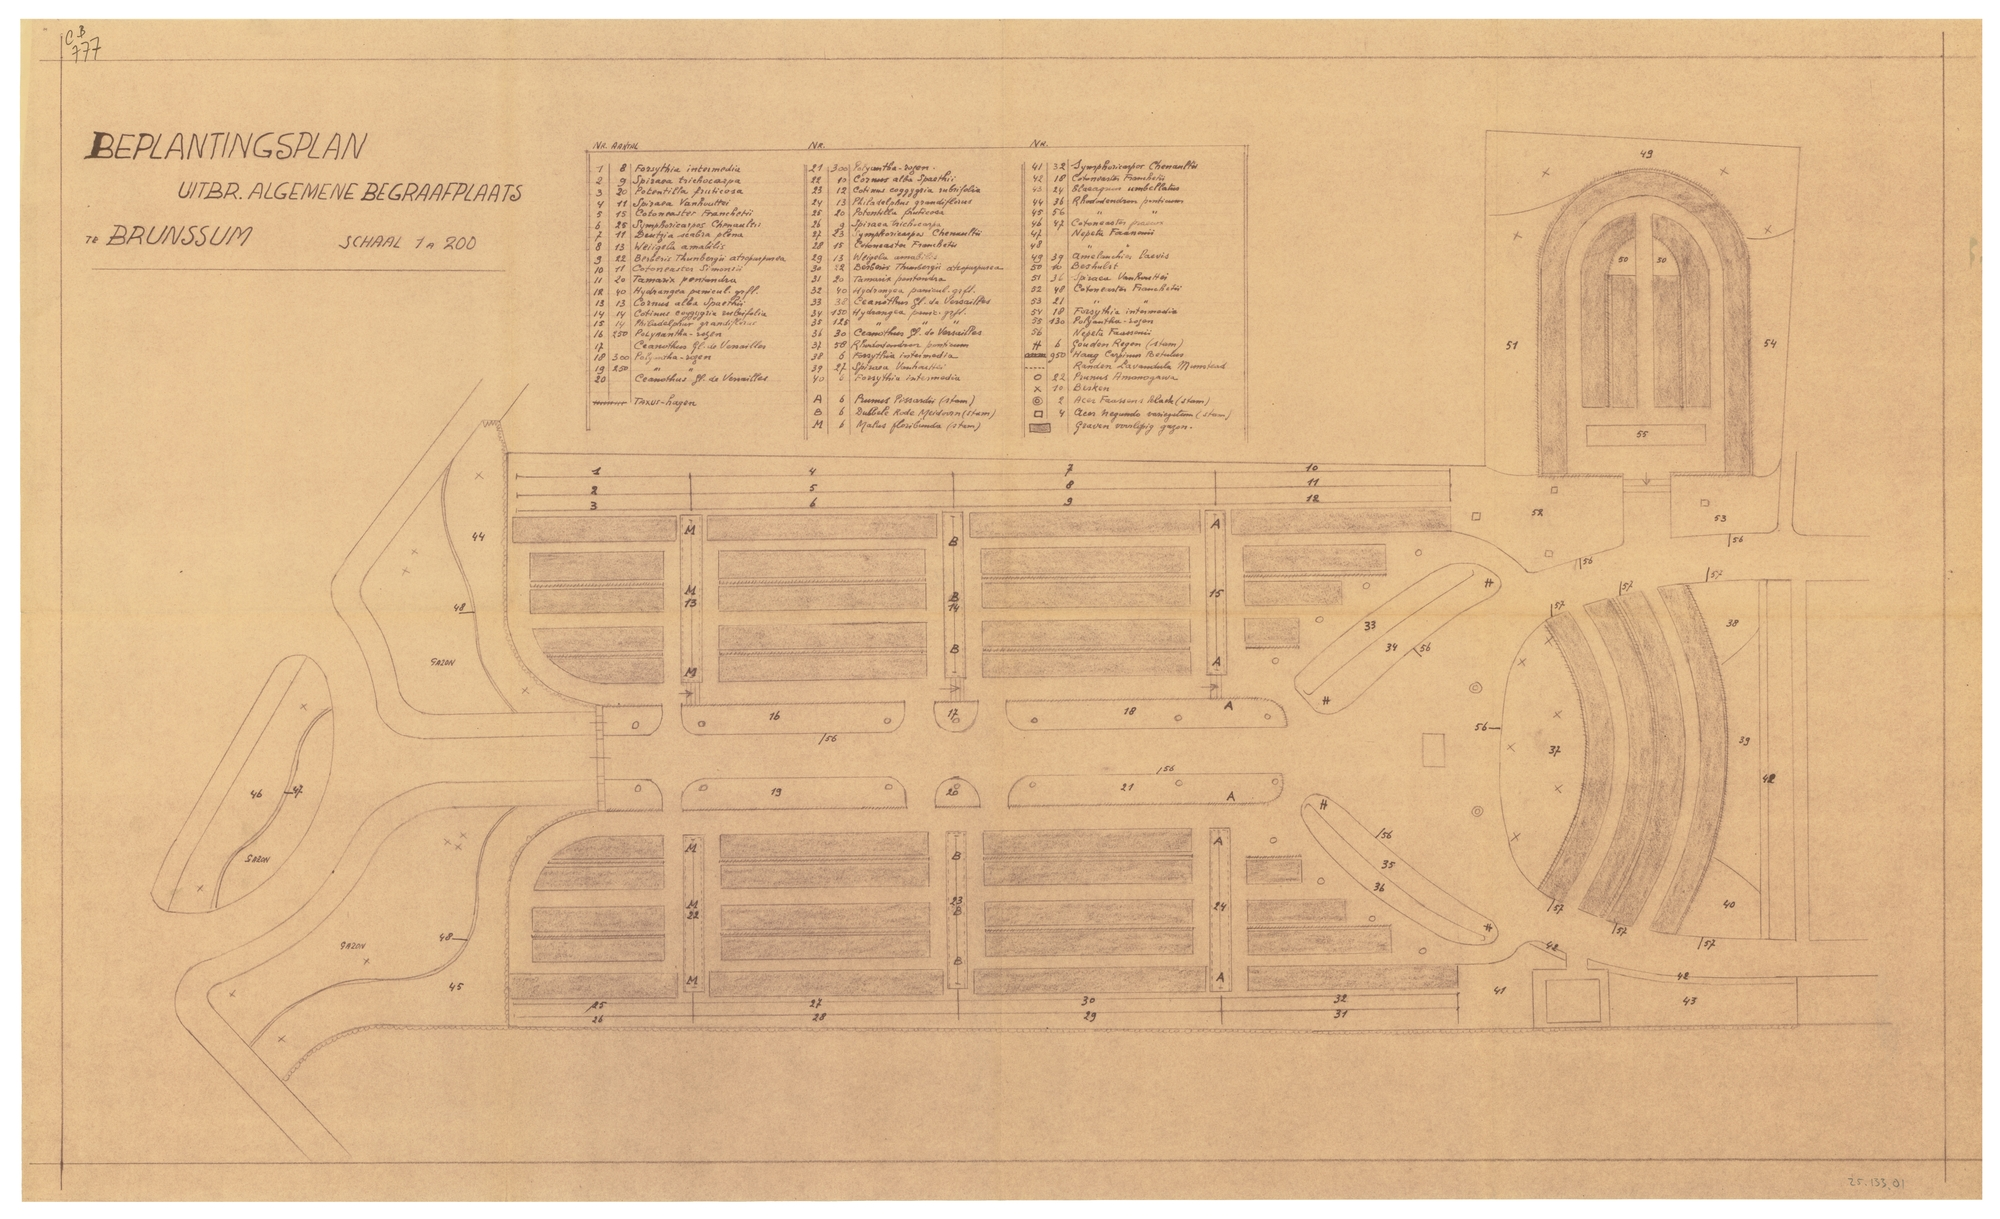 Design and planting plan for the general cemetery in Brunssum, 1954 (WUR Library, Special Collections, 25.133.01)